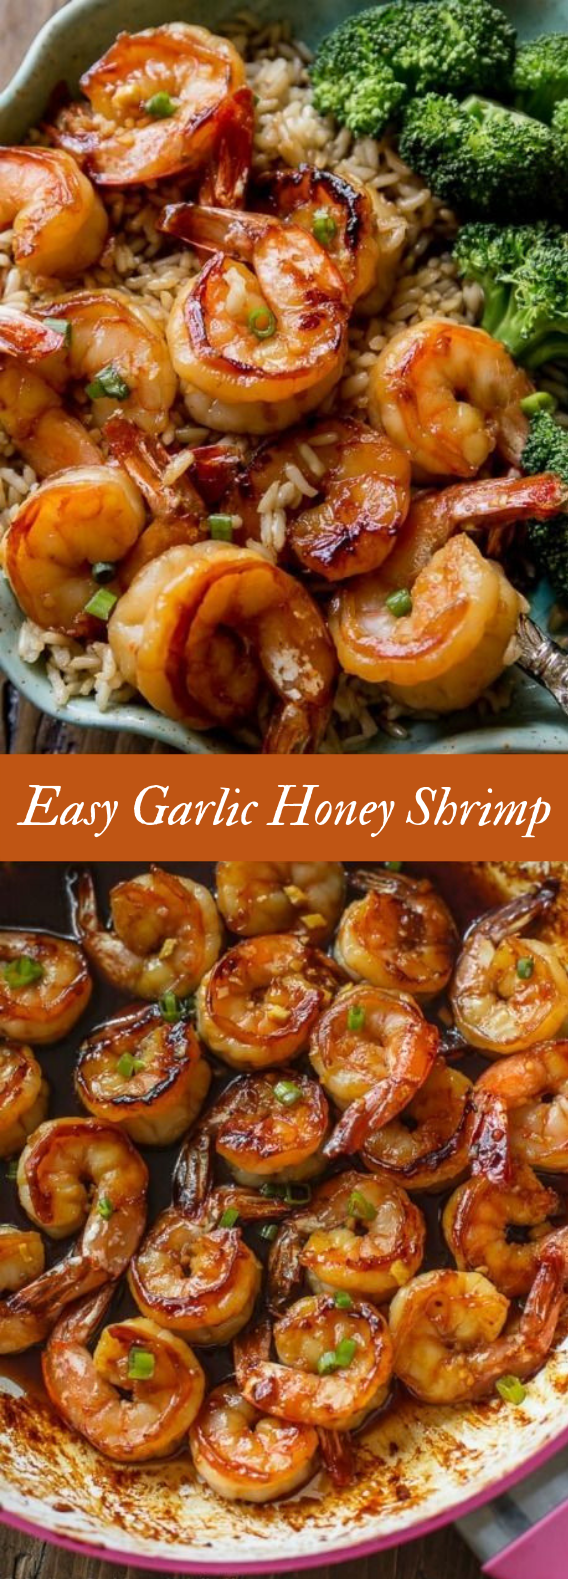 Quick & Healthy Dinner: 20 Minute Honey Garlic Shrimp #Recipe #Easy Easy, healthy, and on the table in about 20 minutes! The combination of honey and garlic is music to my tastebuds, but you know what\u2019s even better t\u2026 #simplehealthydinner